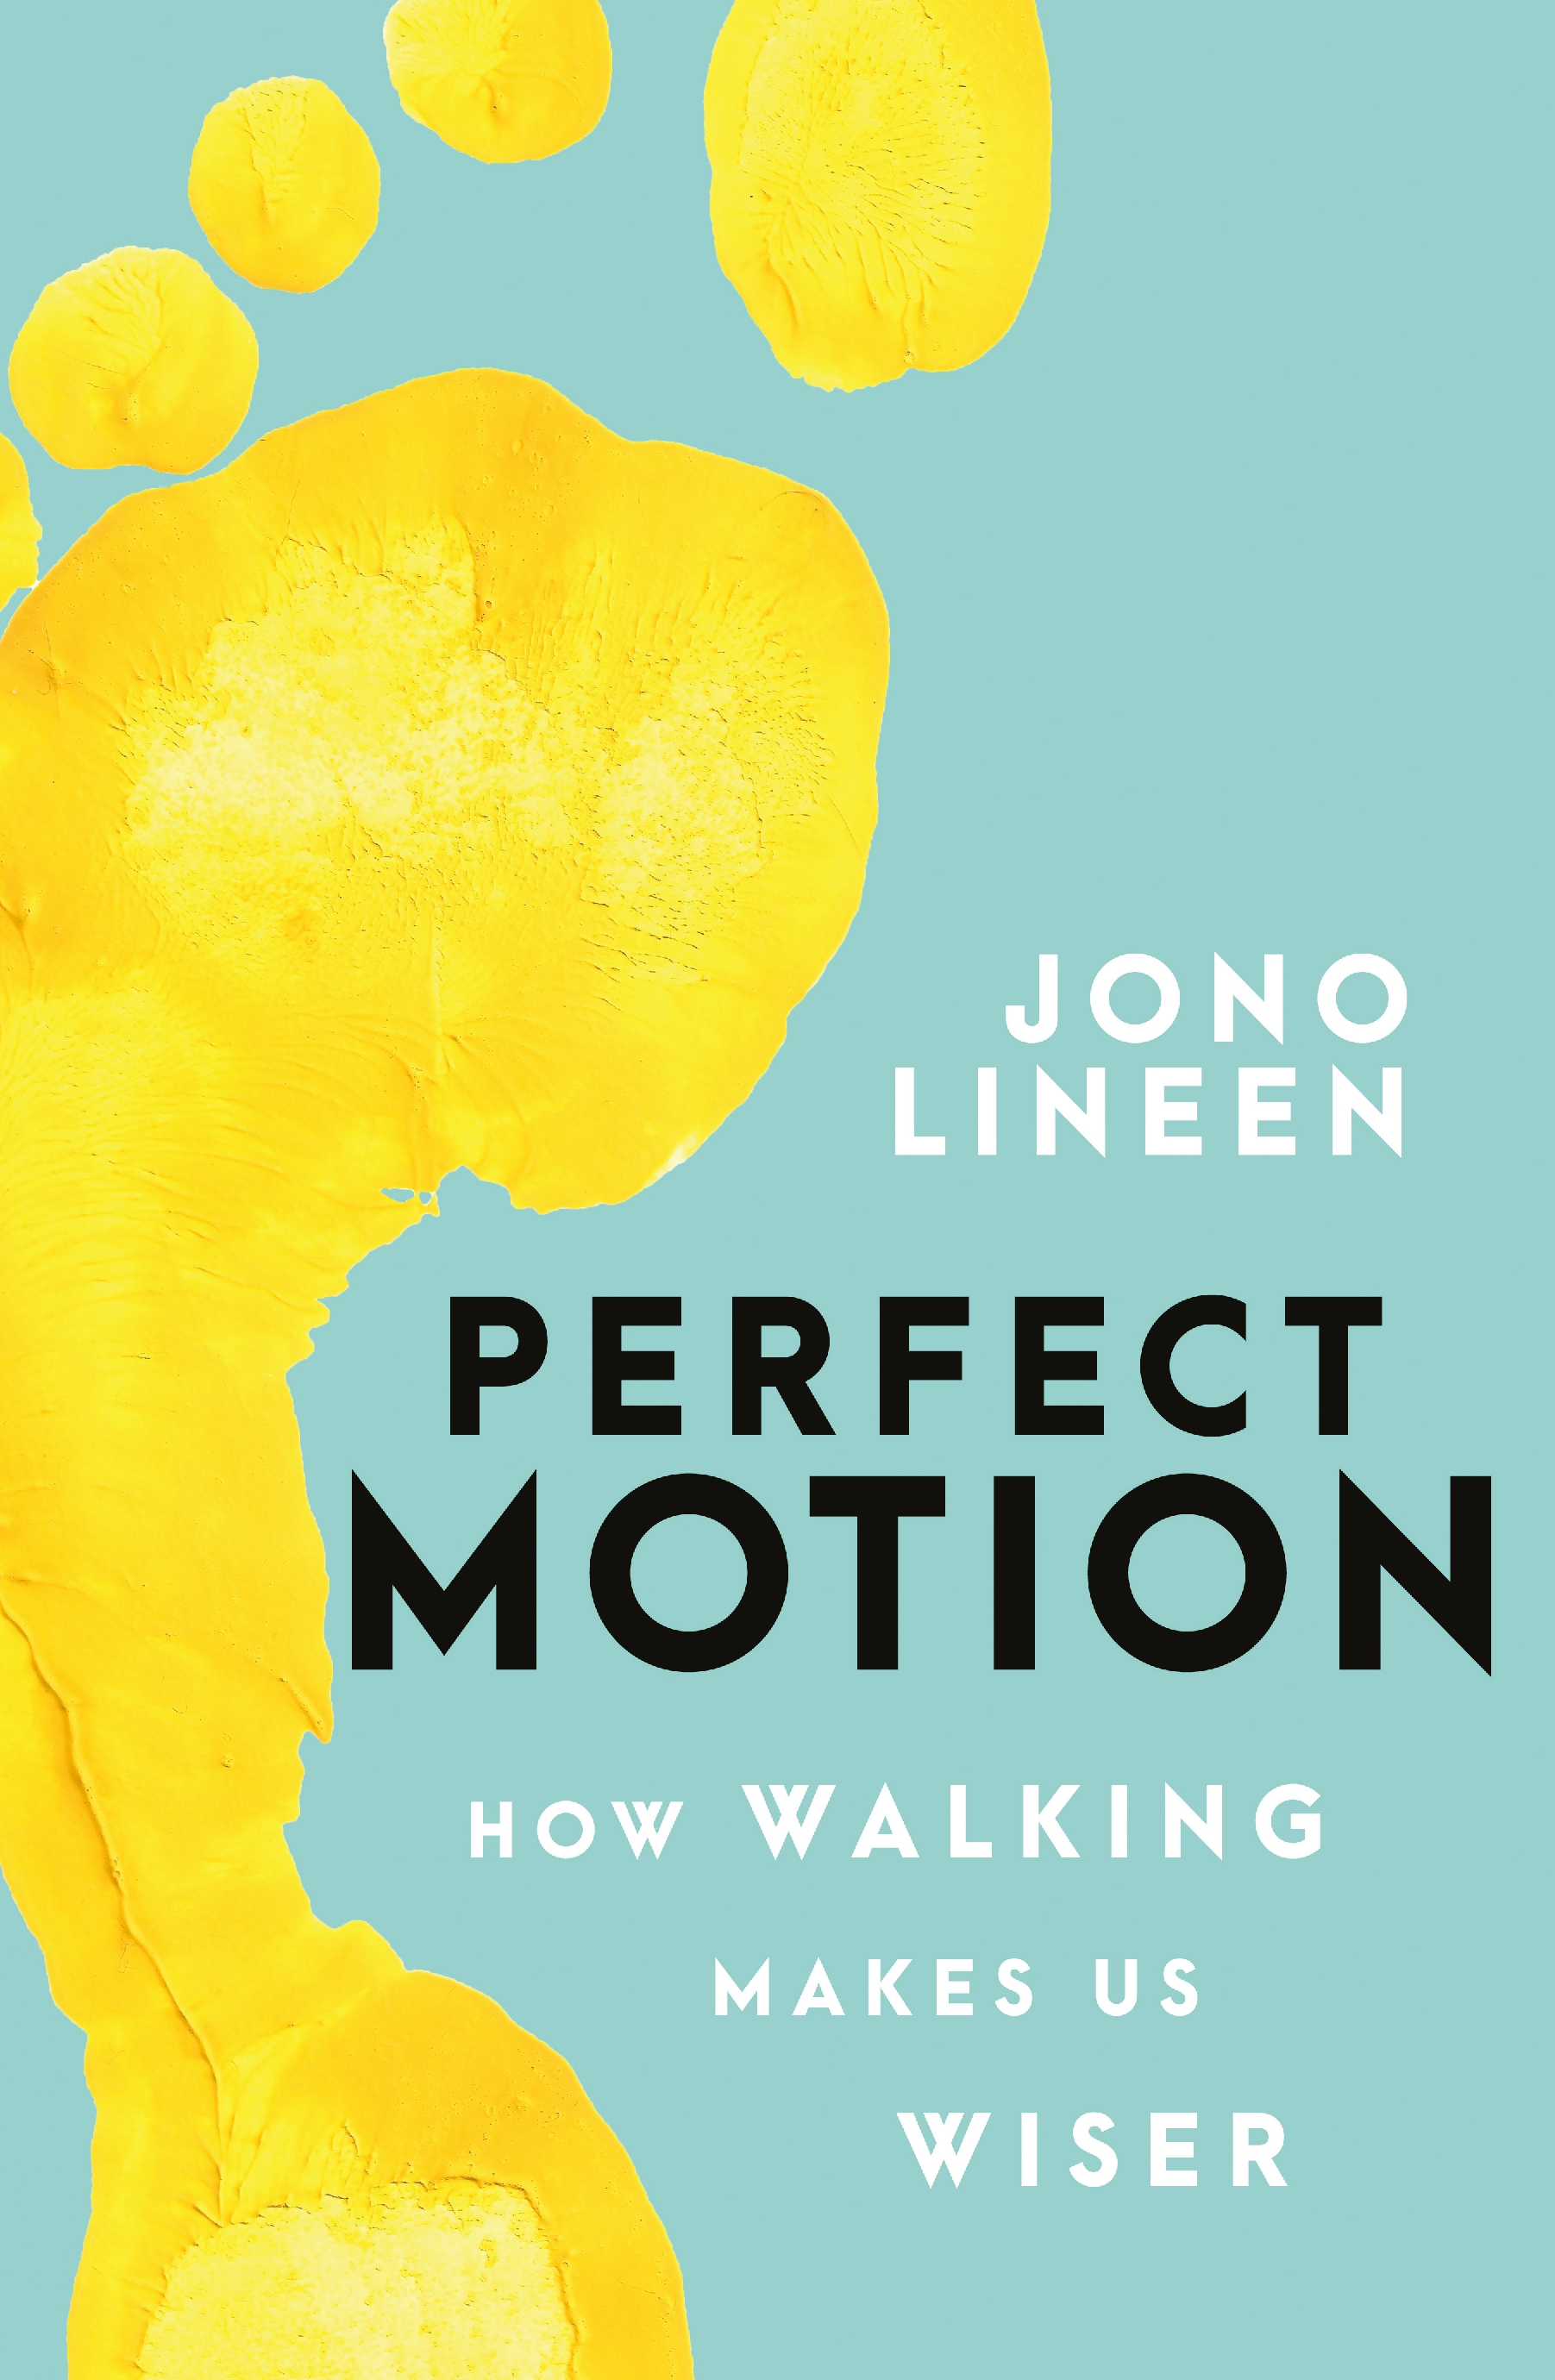 Perfect Motion: How Walking Makes Us Wiser, by Jono Lineen